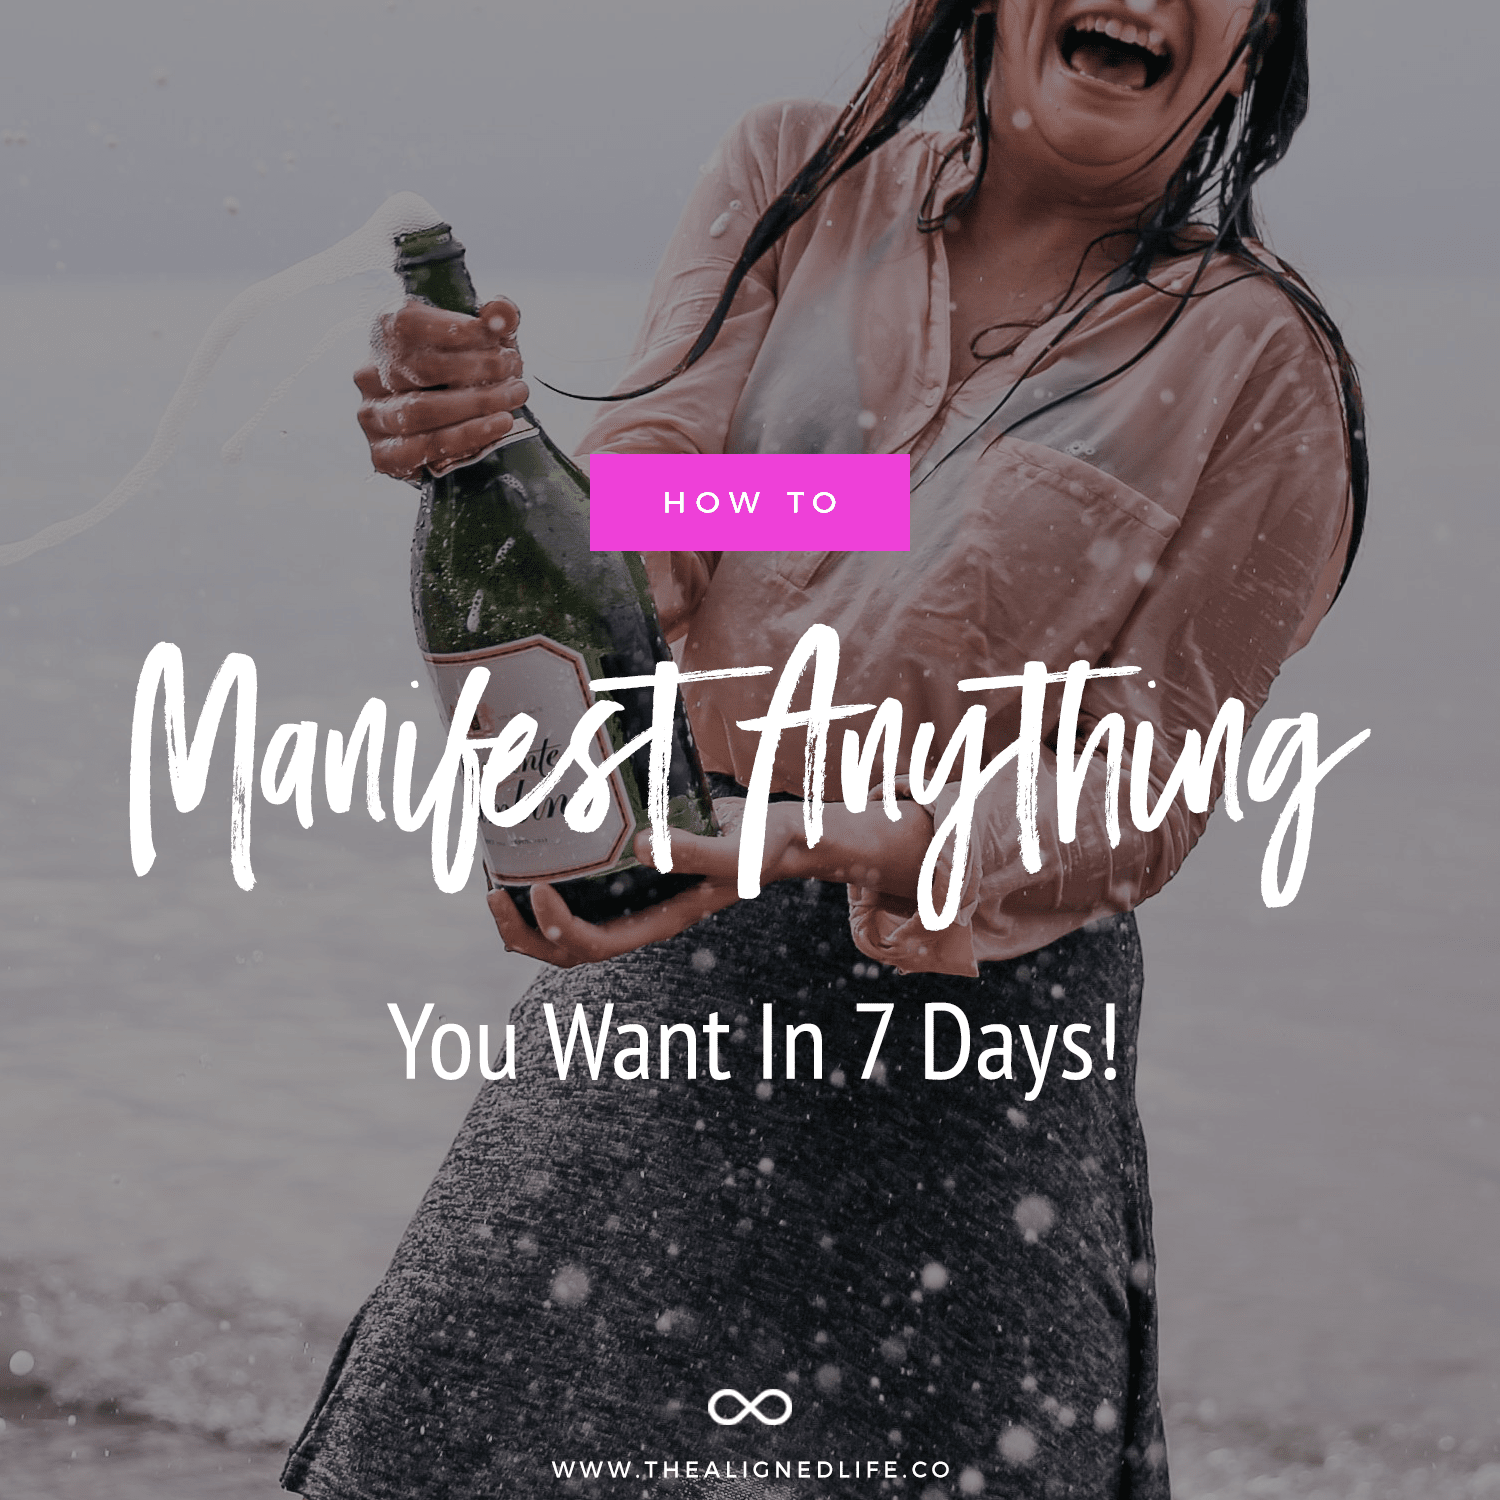 How To Manifest Anything You Want In 7 Days (Fast Manifestation Secrets!)